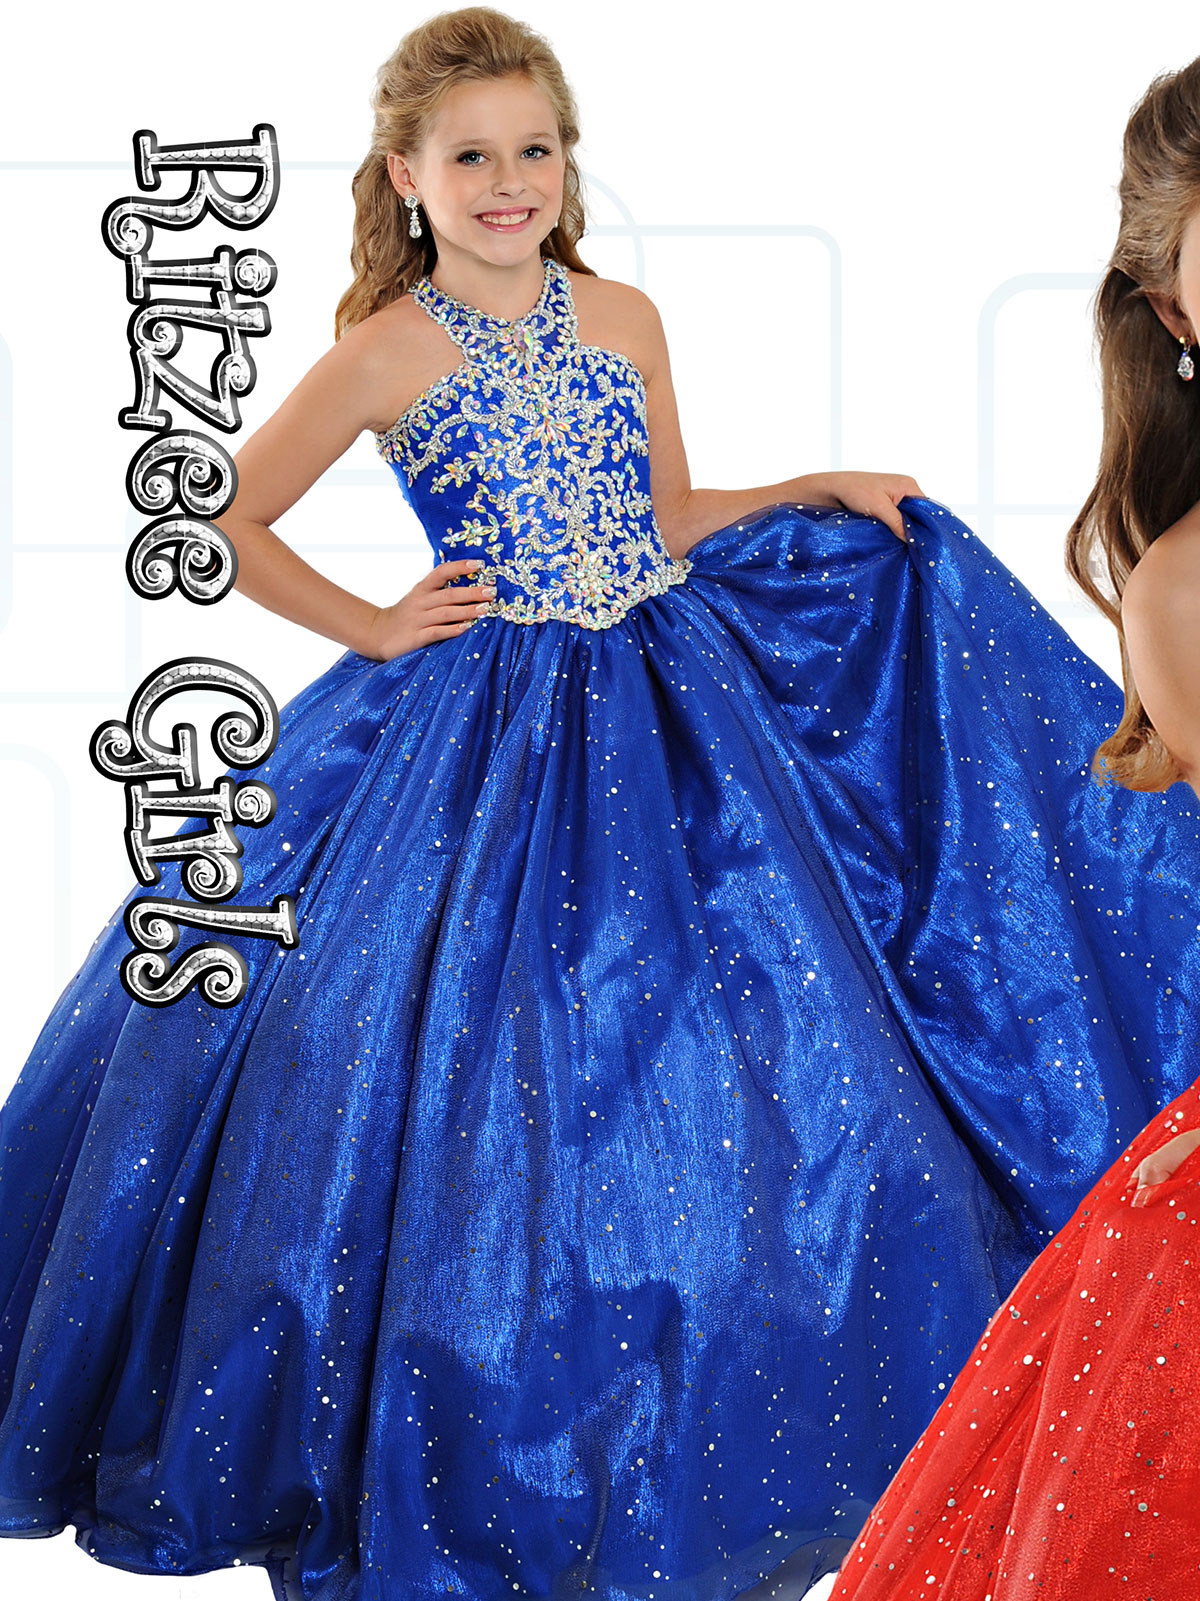 Ritzee Girls truly leads the way when it comes to the latest in pageant styles, so you can always be sure your little pageant queen is rocking the trendiest ensembles around when she's working the runway in a gown from Ritzee Girls.